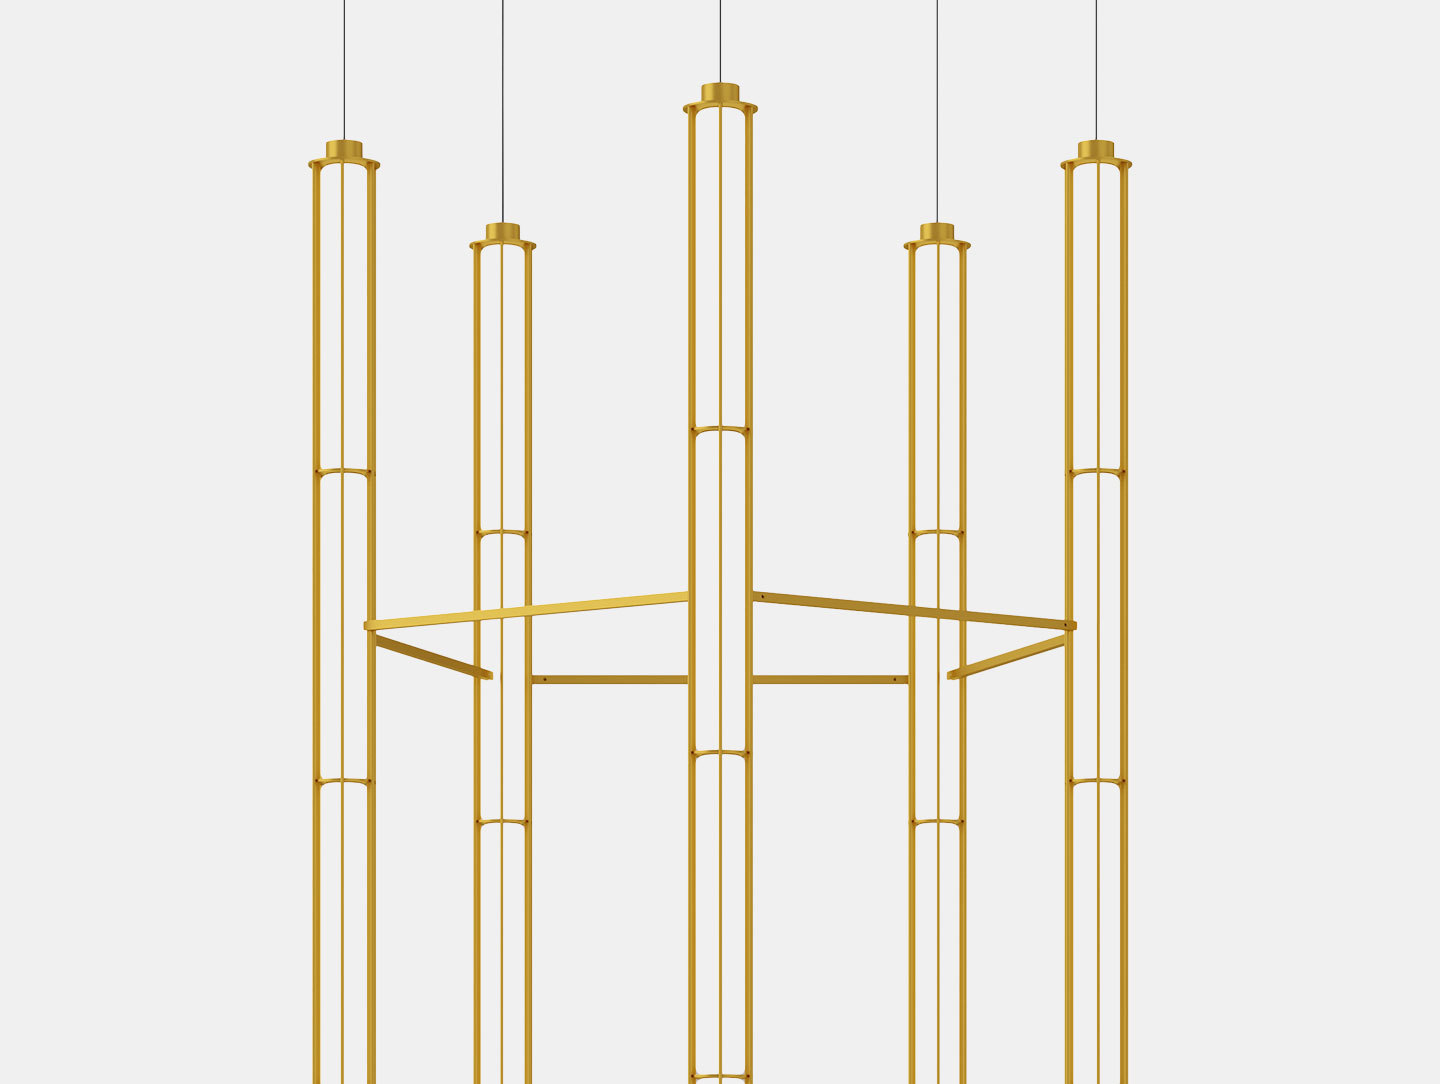 Flos Verticale Suspension Light 5 Detail Ronan Erwan Bouroullec